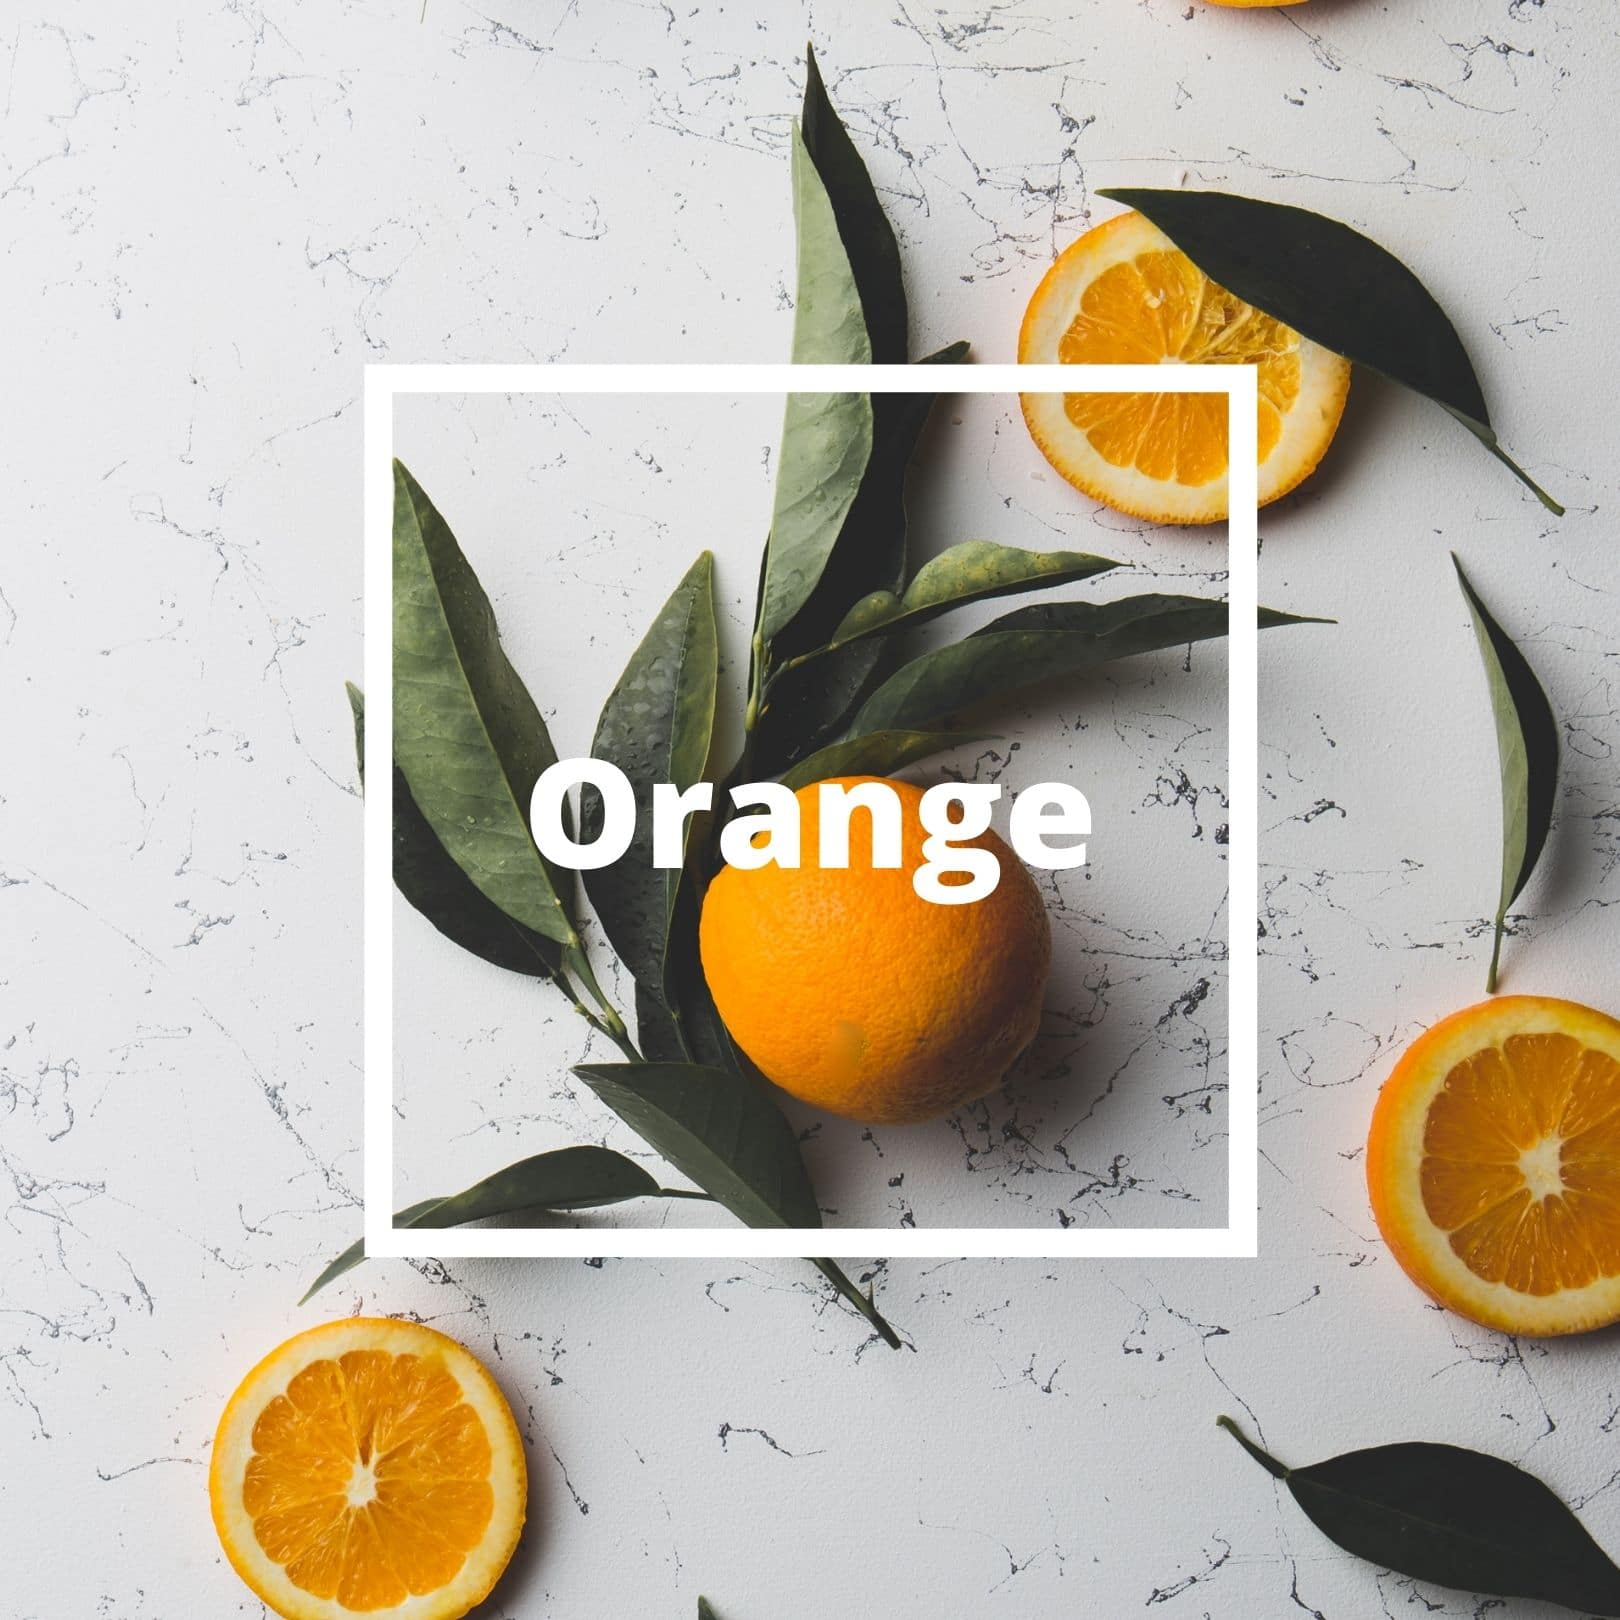 L'ATELIERO - Orange - Innocent Addiction